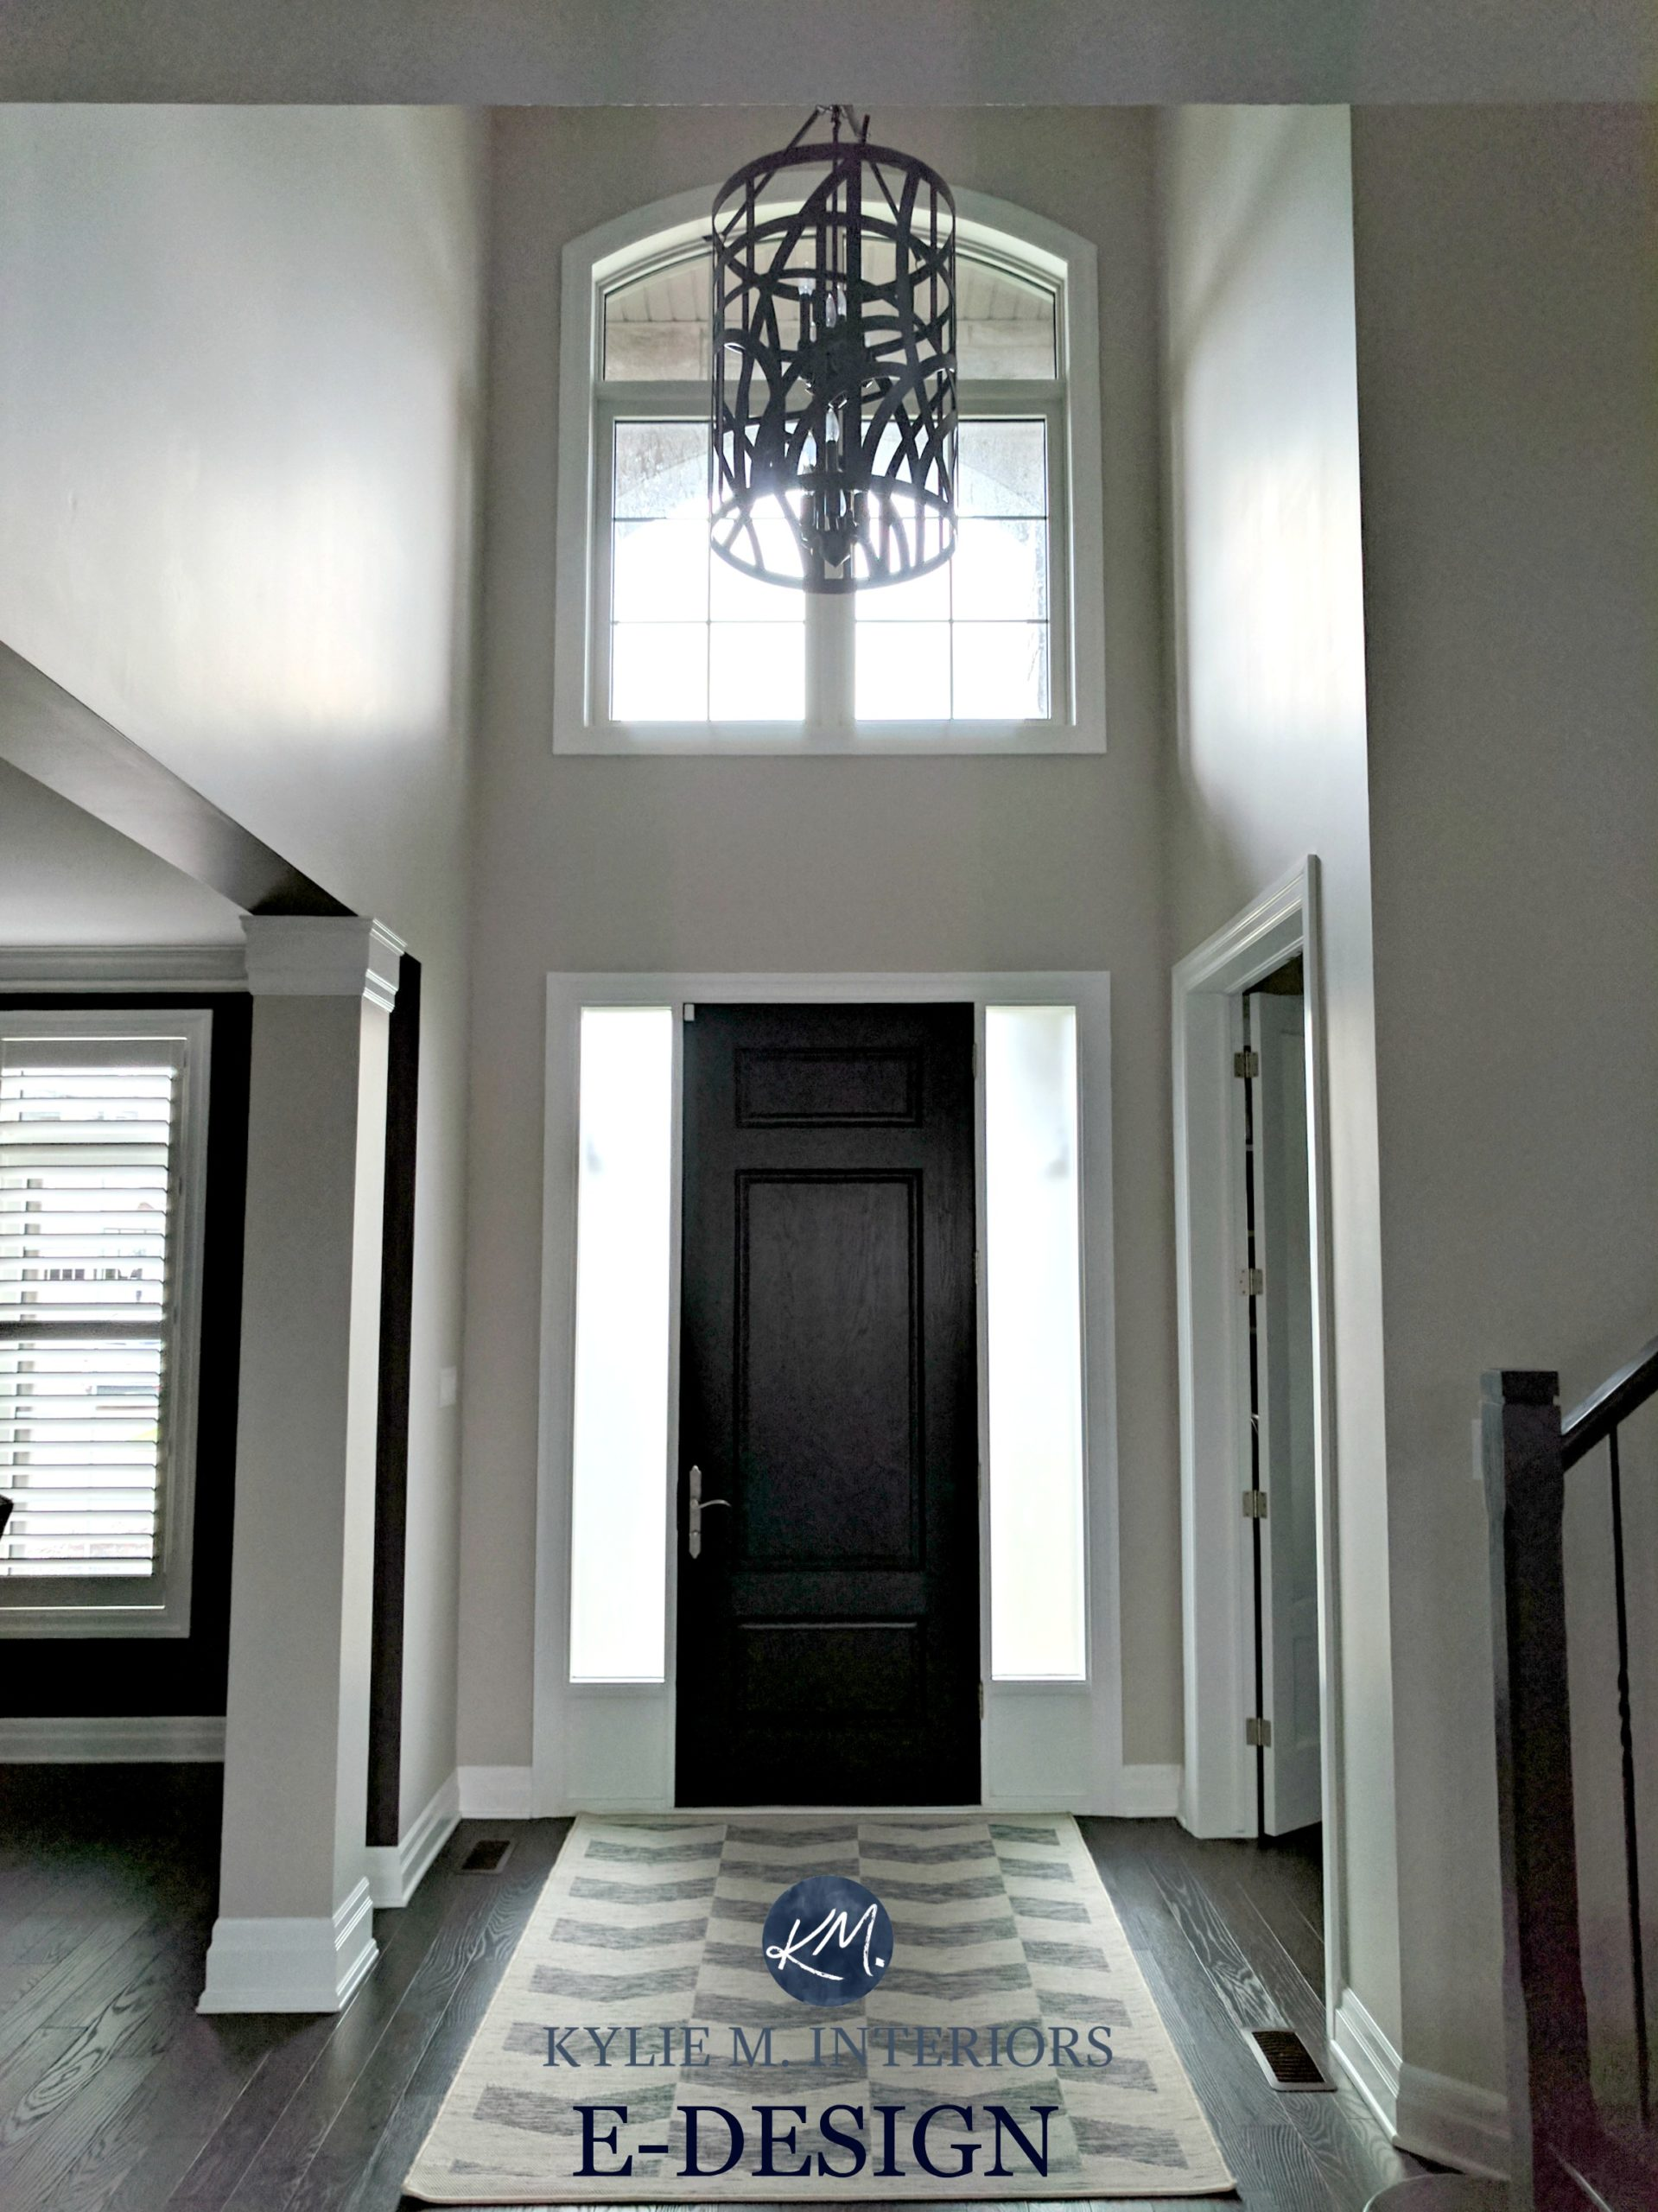 Benjamin Moore Collingwood In 2 Storey Entryway Or Foyer With Dark Wood Door  And White Trim. Kylie M Interiors E Design And Online Color Consulting